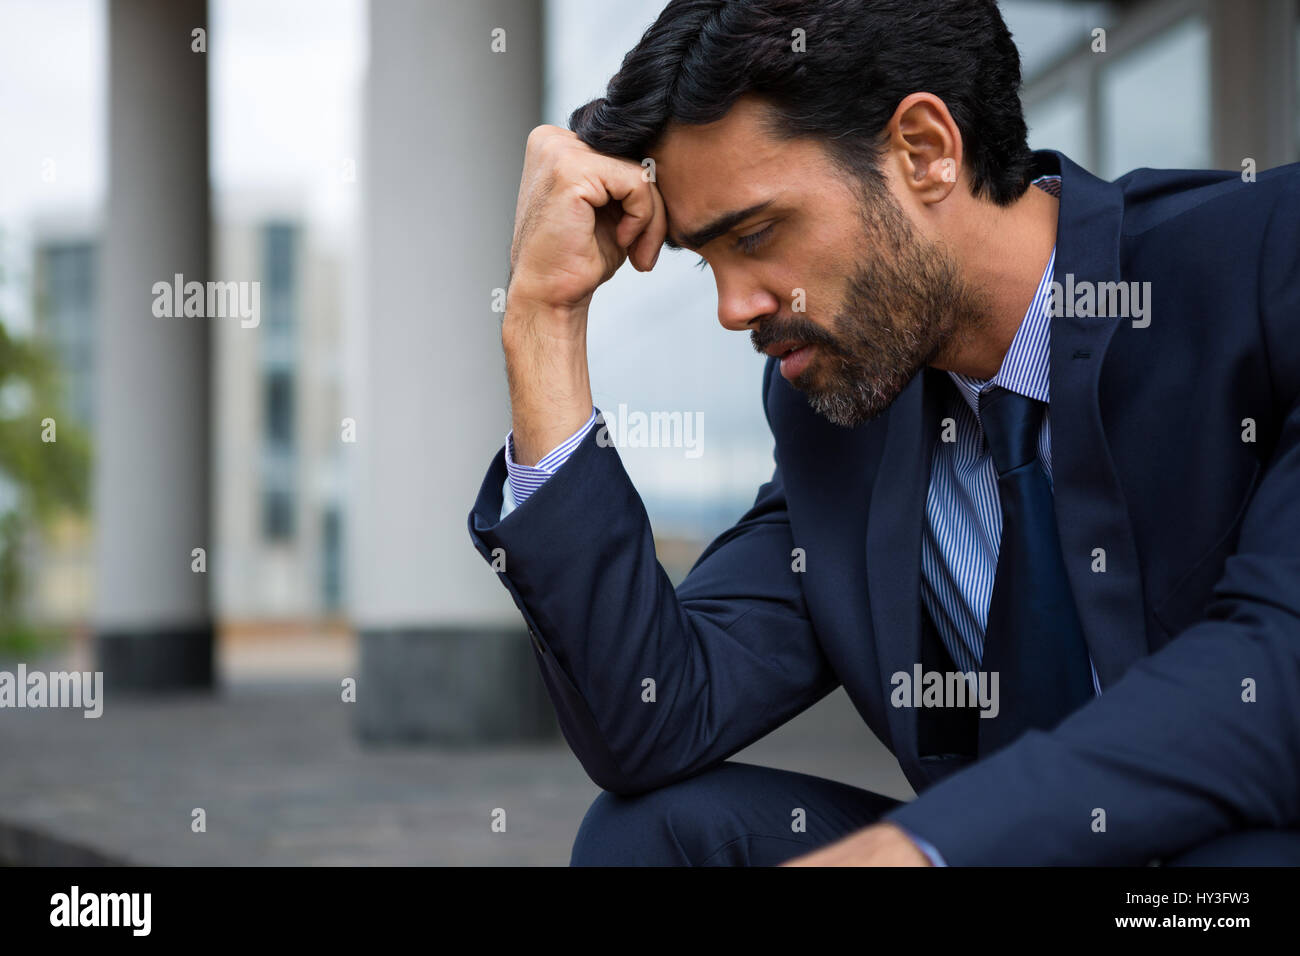 Depressed businessman sitting with hand on forehead in the office premises - Stock Image